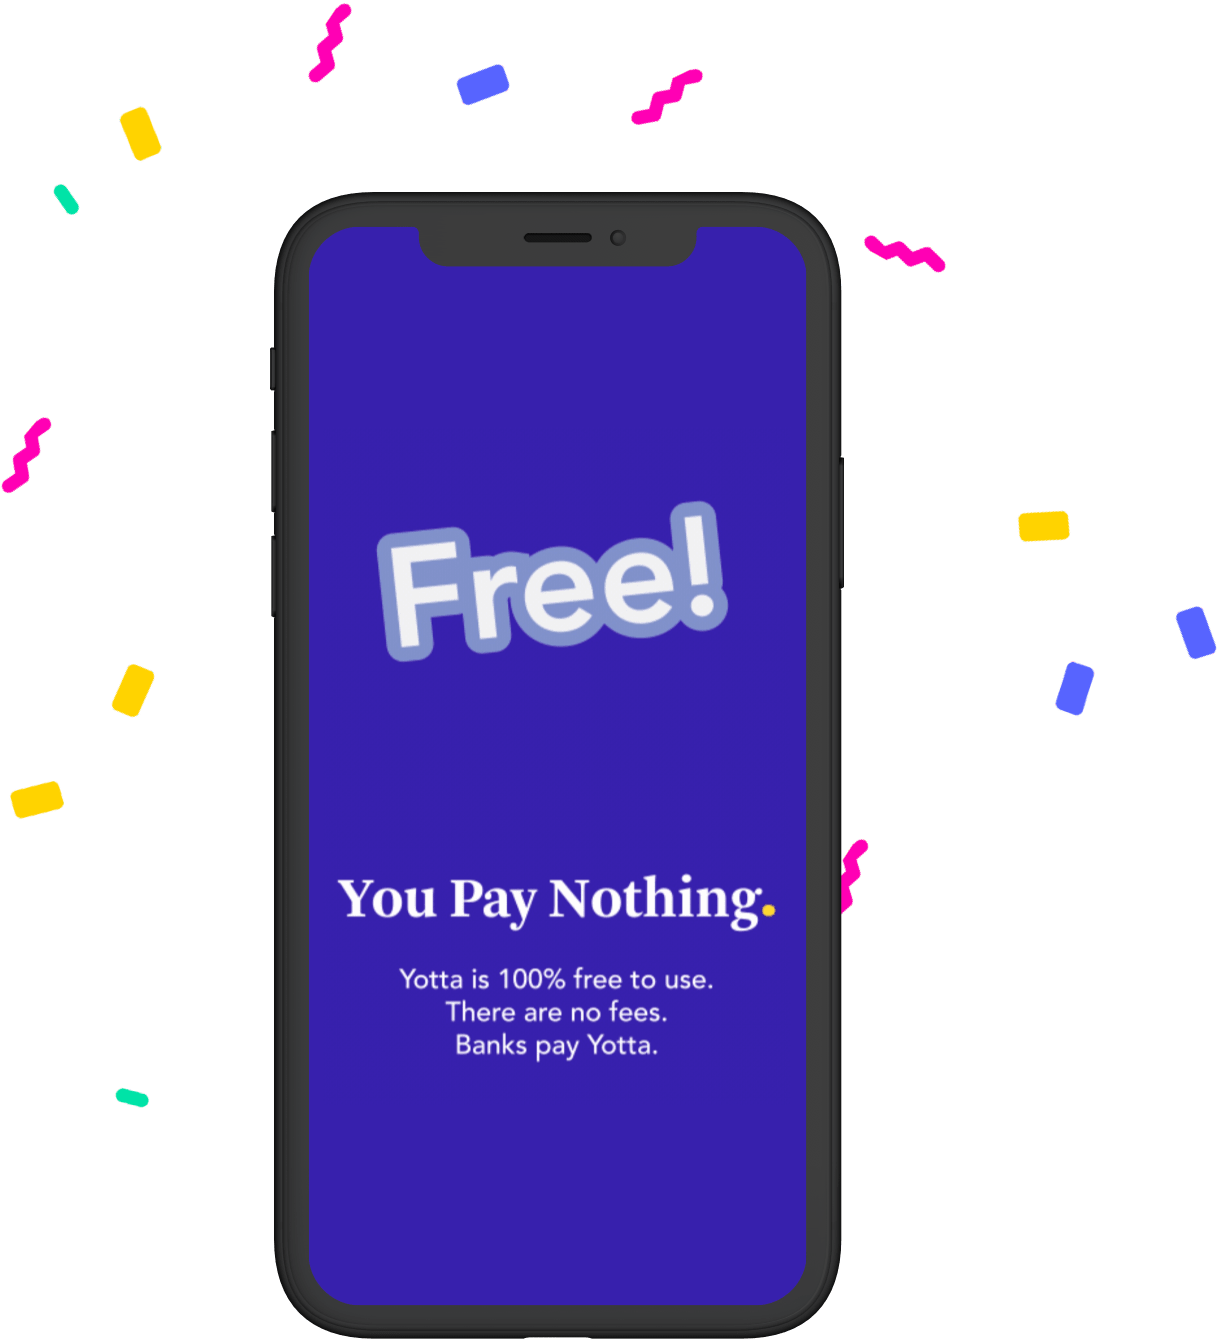 You Pay Nothing Phone